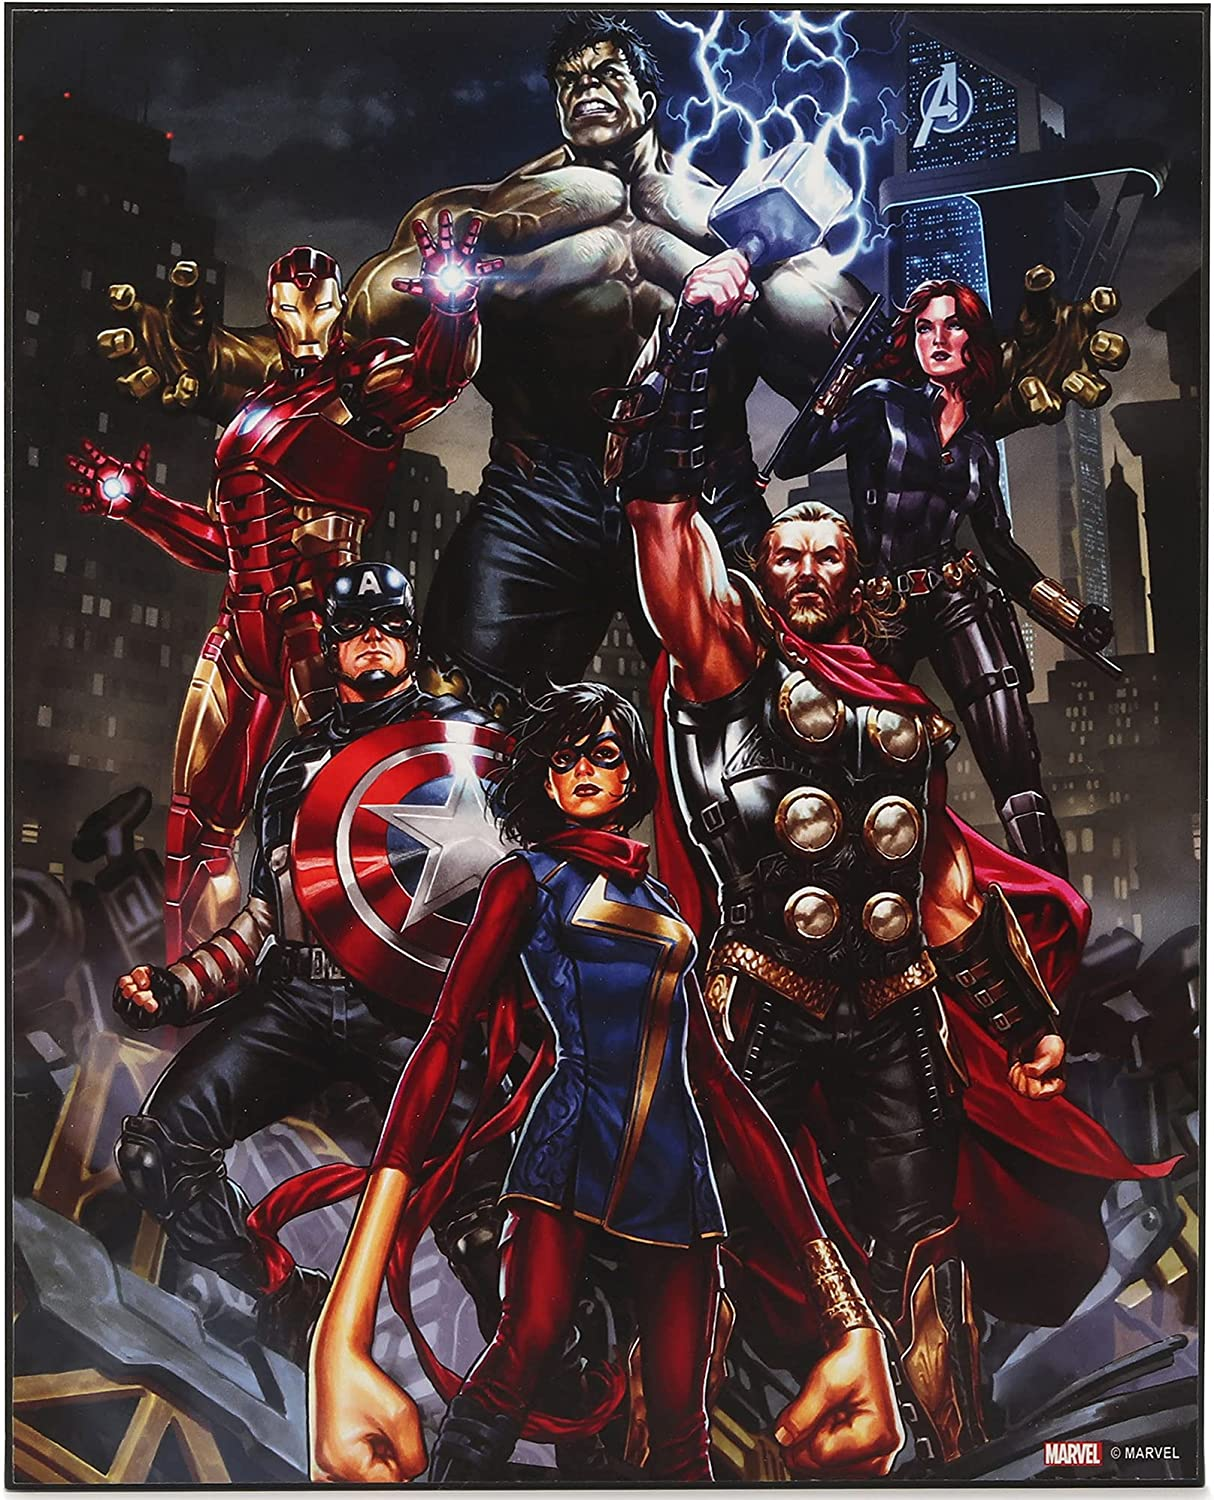 Open Road Brands Marvel Avengers Thor, The Incredible Hulk, Captain America, Black Widow, Iron Man and Ms. Marvel Wood Wall Decor for Movie Room, Man Cave, or Kids' Room